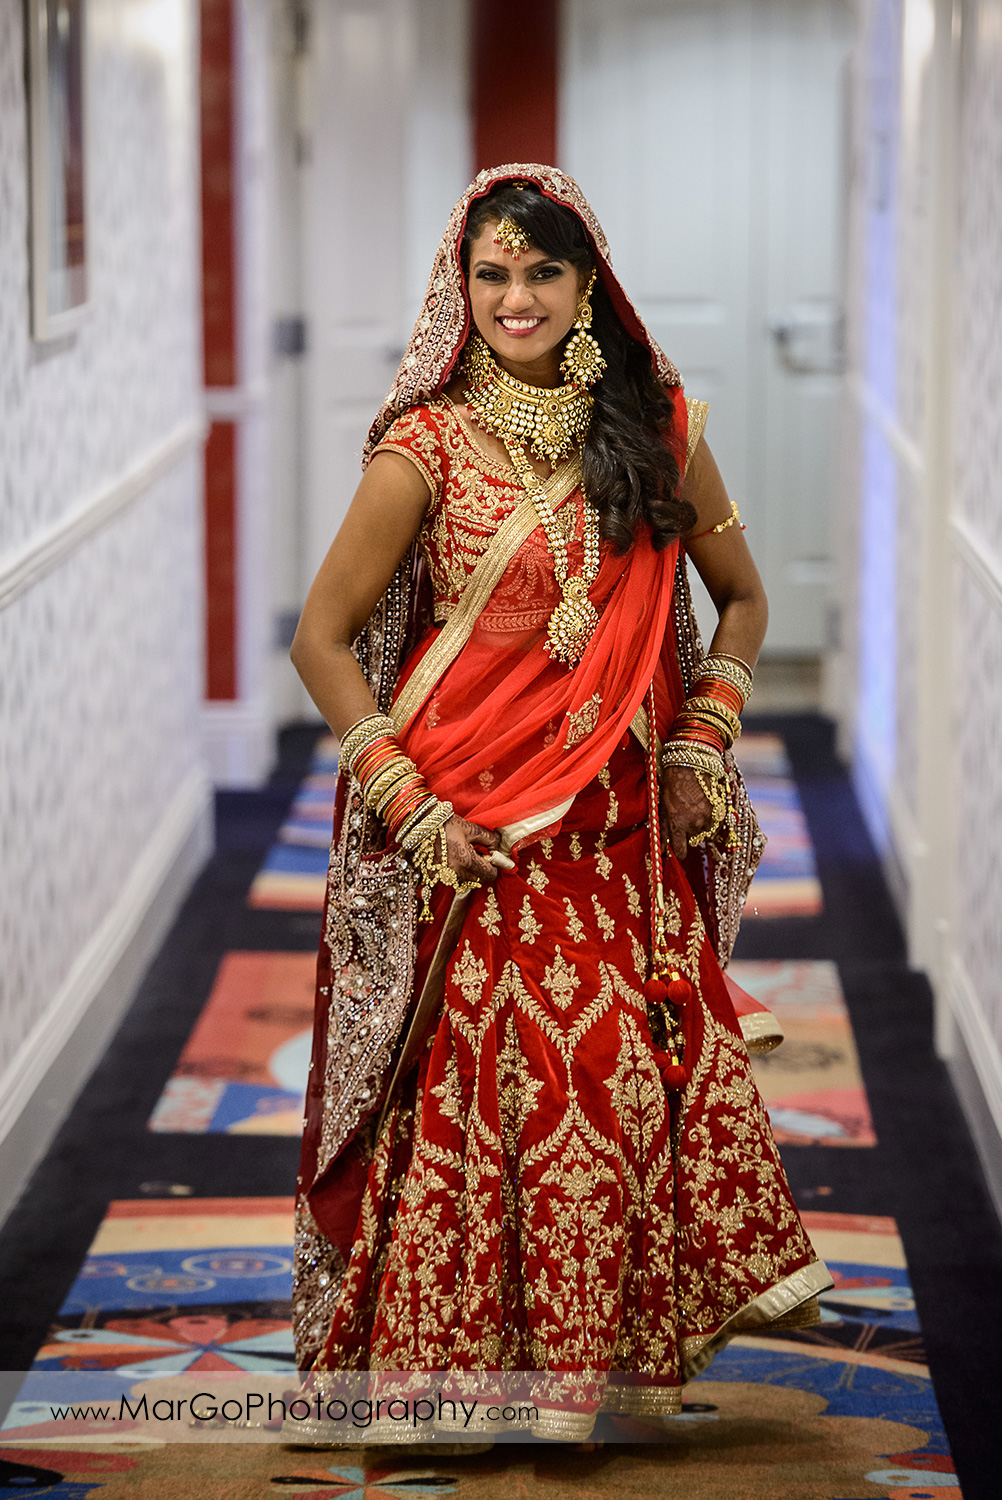 indian bride walking down the hallway at Hotel Shattuck Plaza in Berkeley